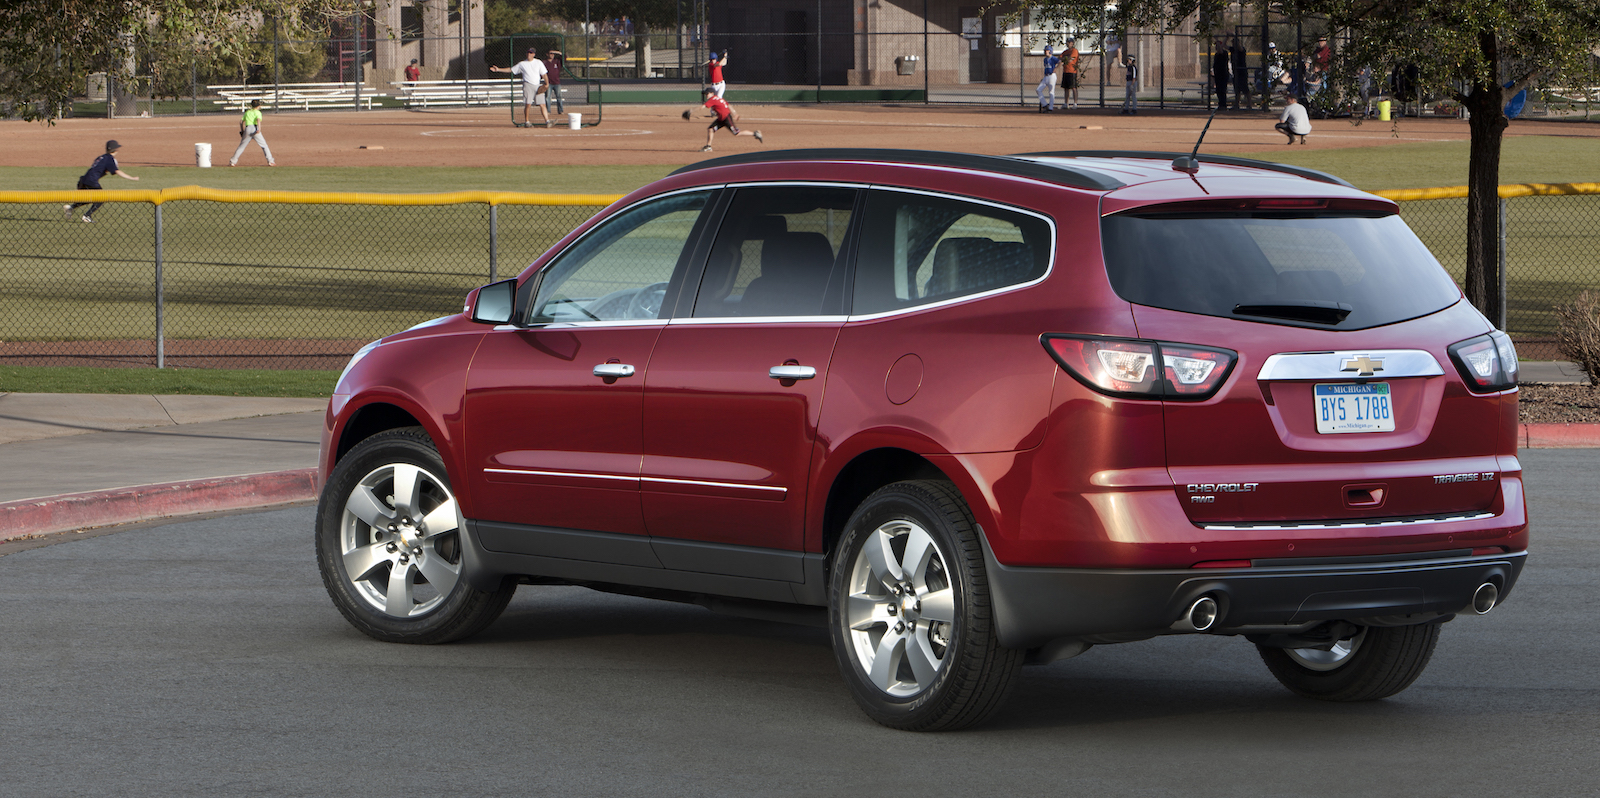 2013 Chevrolet Traverse Consumer Reviews 11 Car Reviews Edmunds. What To  Expect From Each Of The Chevy Traverse S Model Years